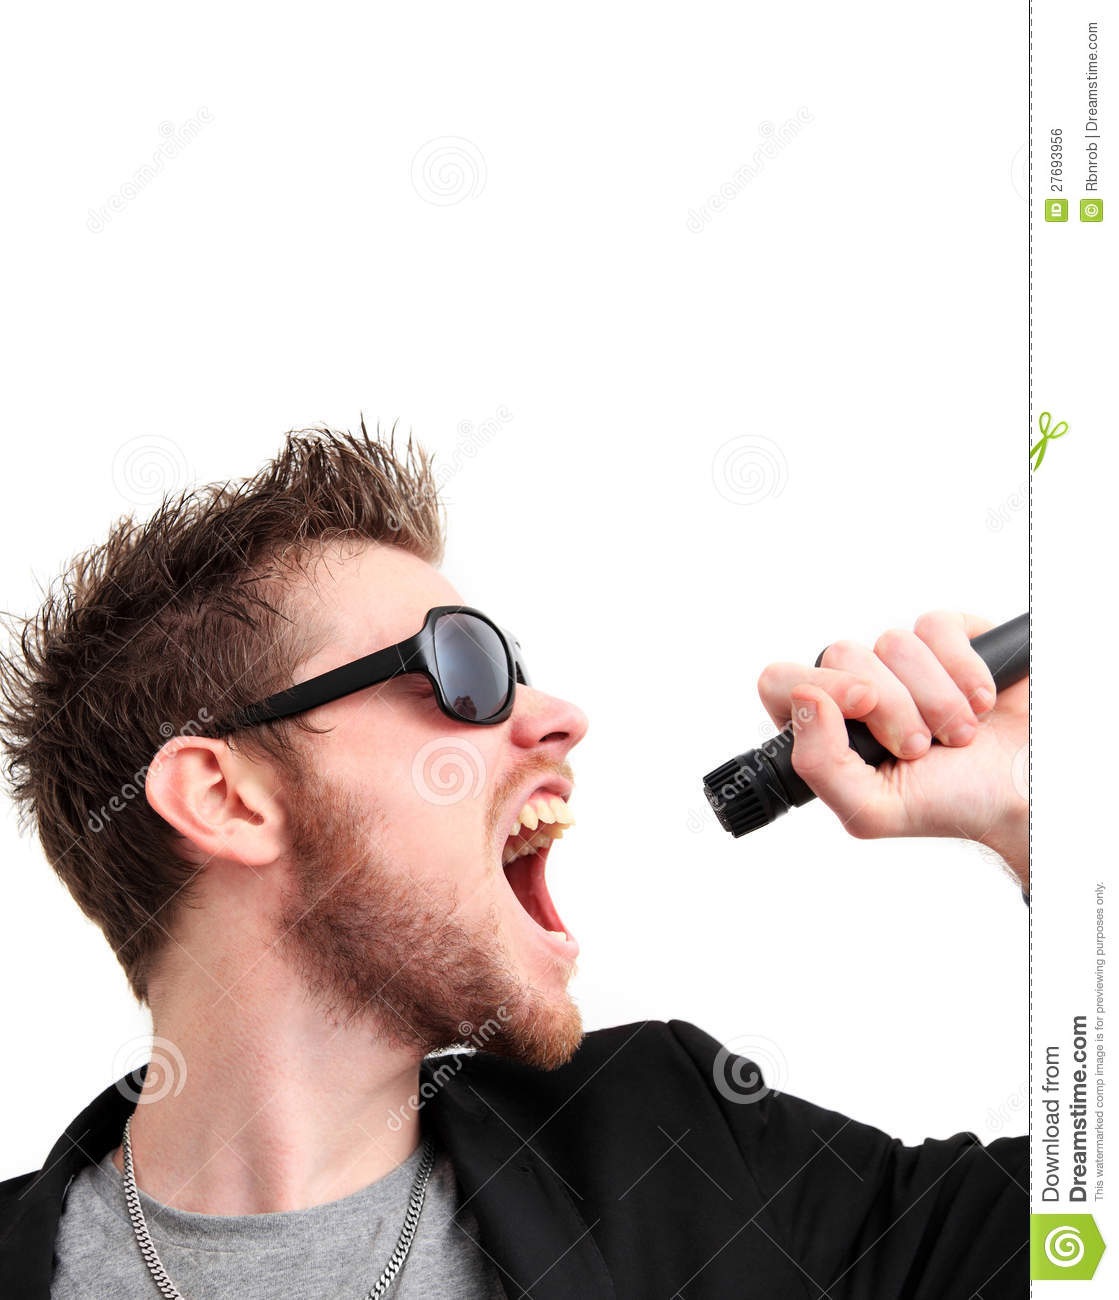 Screaming Rocker Guy Royalty Free Stock Image - Image: 27693956